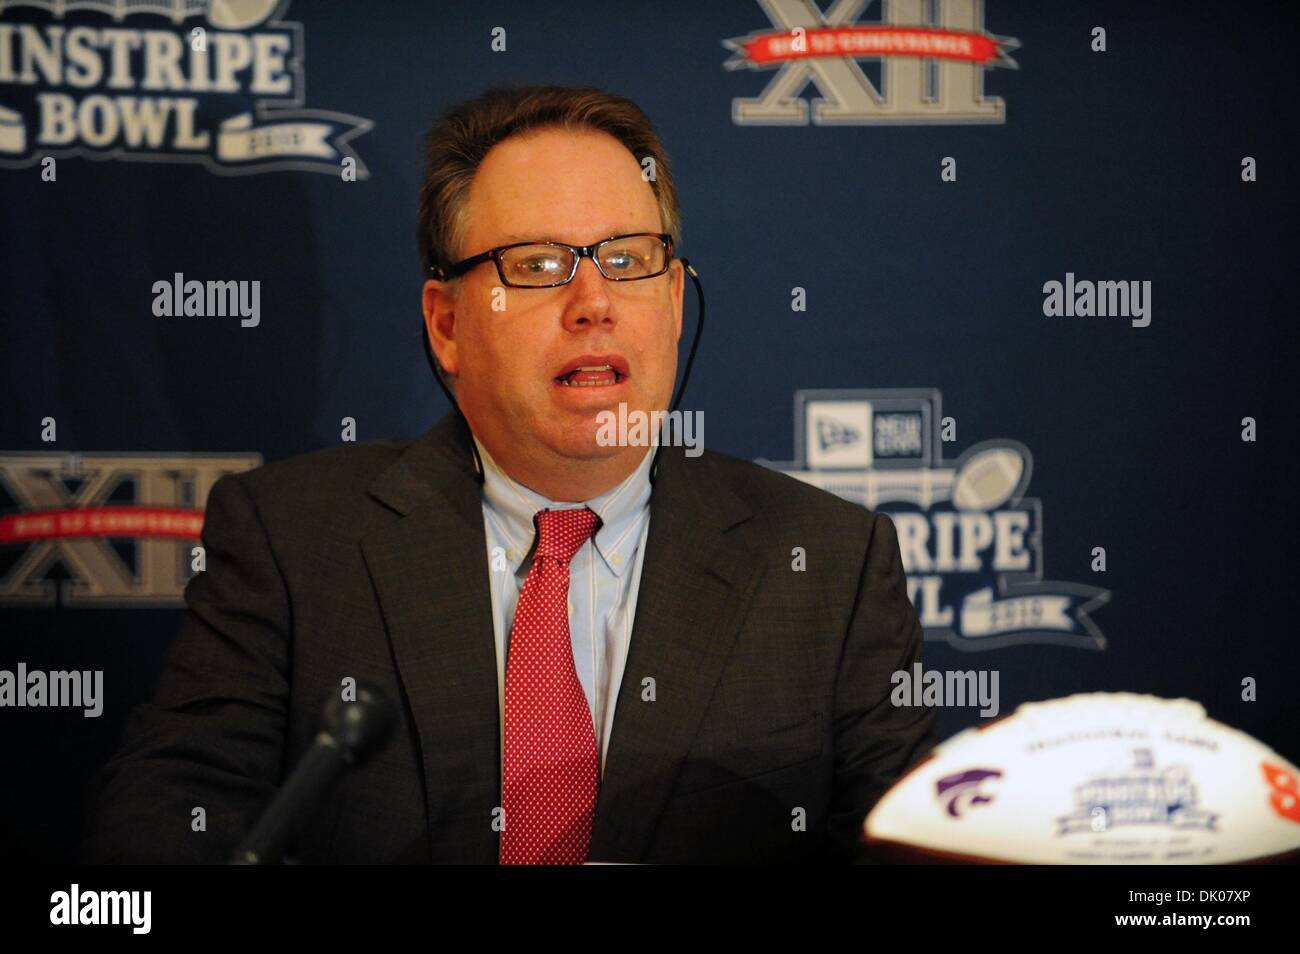 Dec. 22, 2010 - Manhattan, New York, U.S. - MARK HOLTZMAN, Executive Director of the New Era Pinstripe Bowl speaks as the New Era Pinstripe Bowl announces that it will donate over 6,000 tickets to New York City - based charitable and community groups for the inaugural bowl game to be played on December 30, 2010 at Yankee Stadium. (Credit Image: © Bryan Smith/ZUMAPRESS.com) - Stock Image